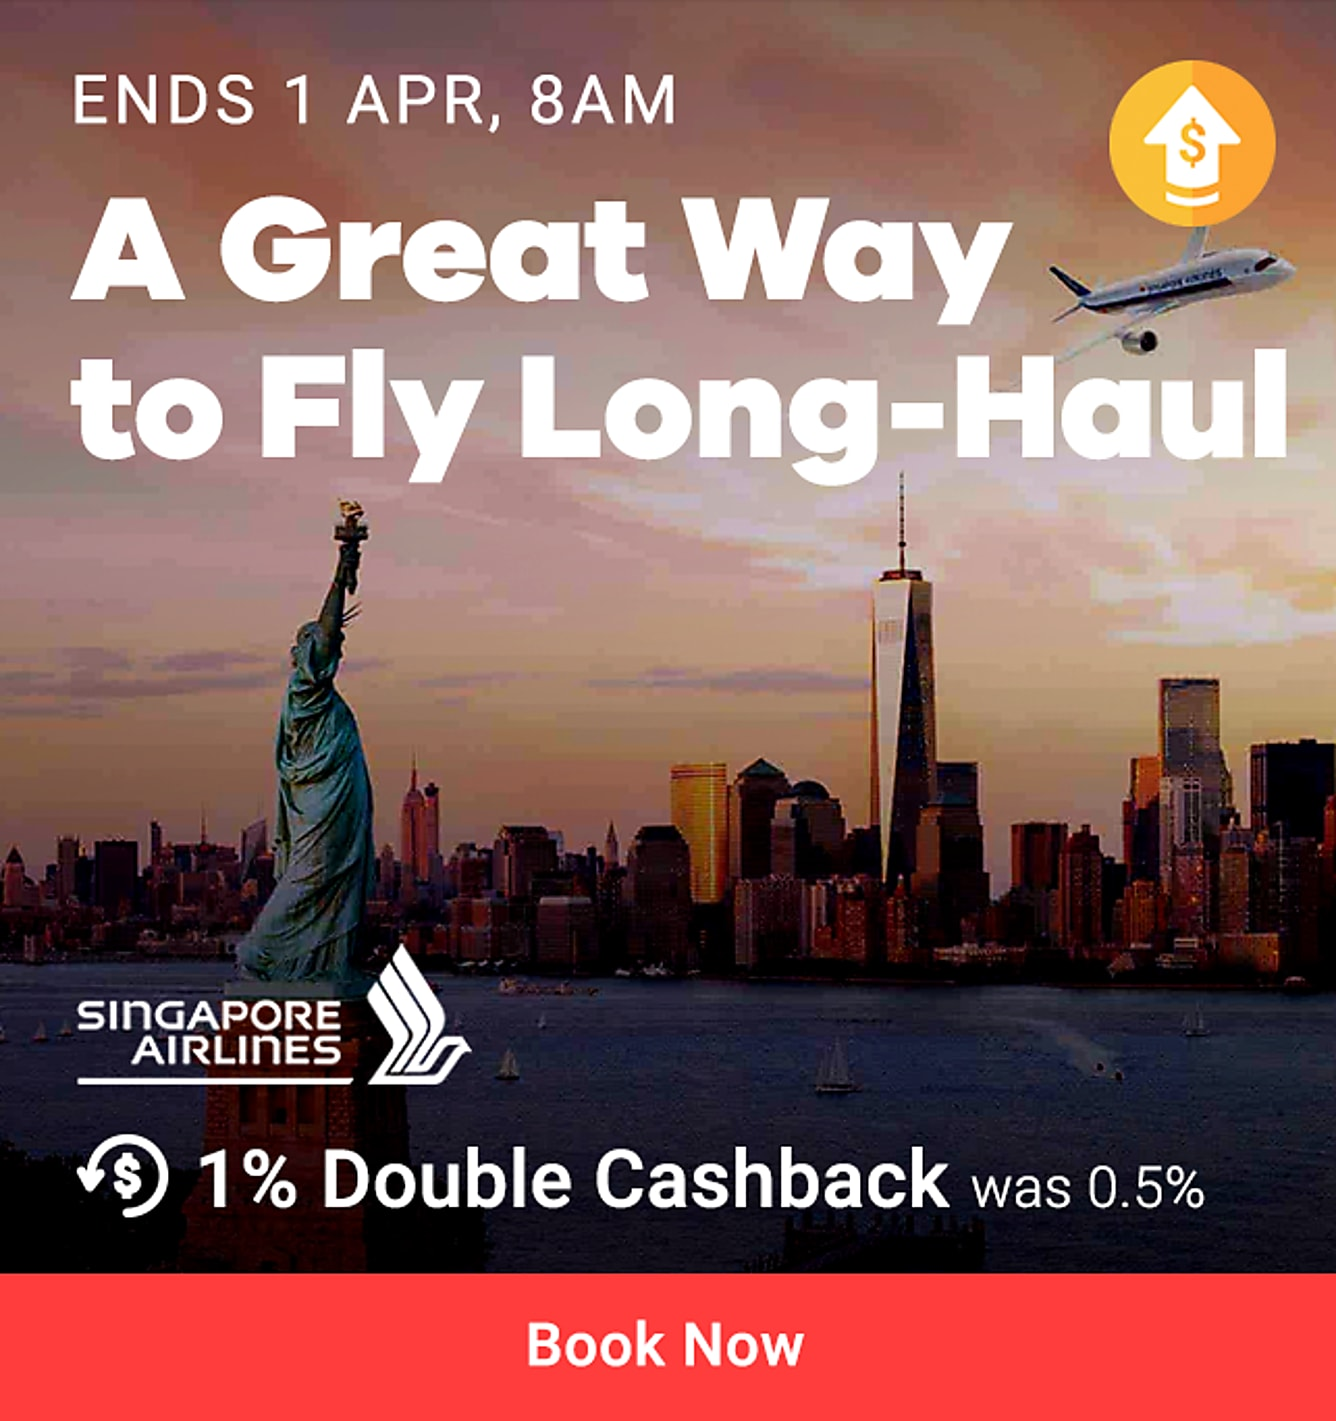 Singapore airlines regular store 1.0% Double Cashback (was 0.5%) from 22 Mar - 1 Apr 8am